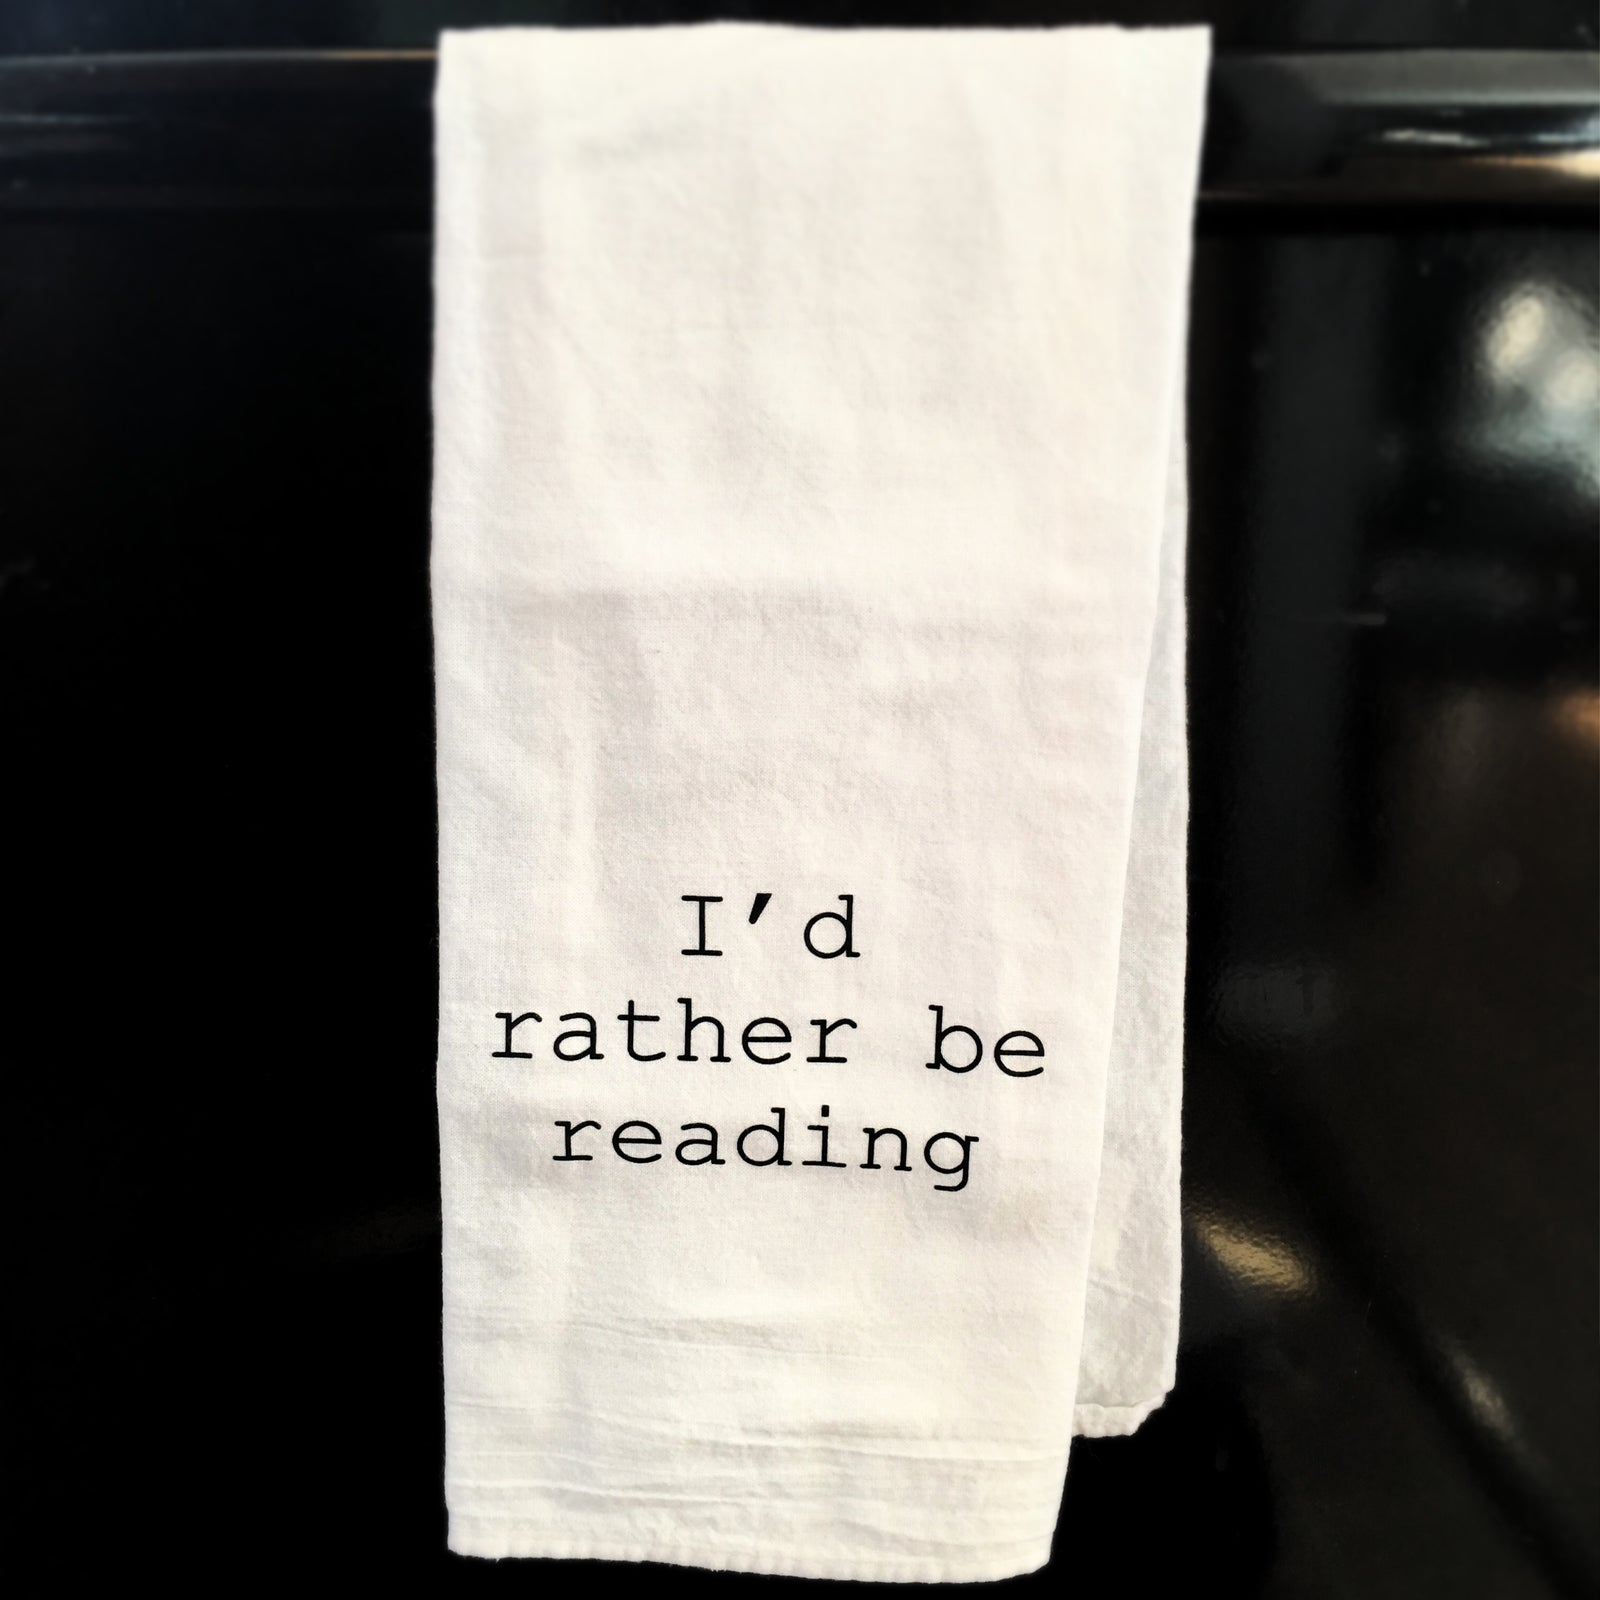 Towel: I'd rather be reading